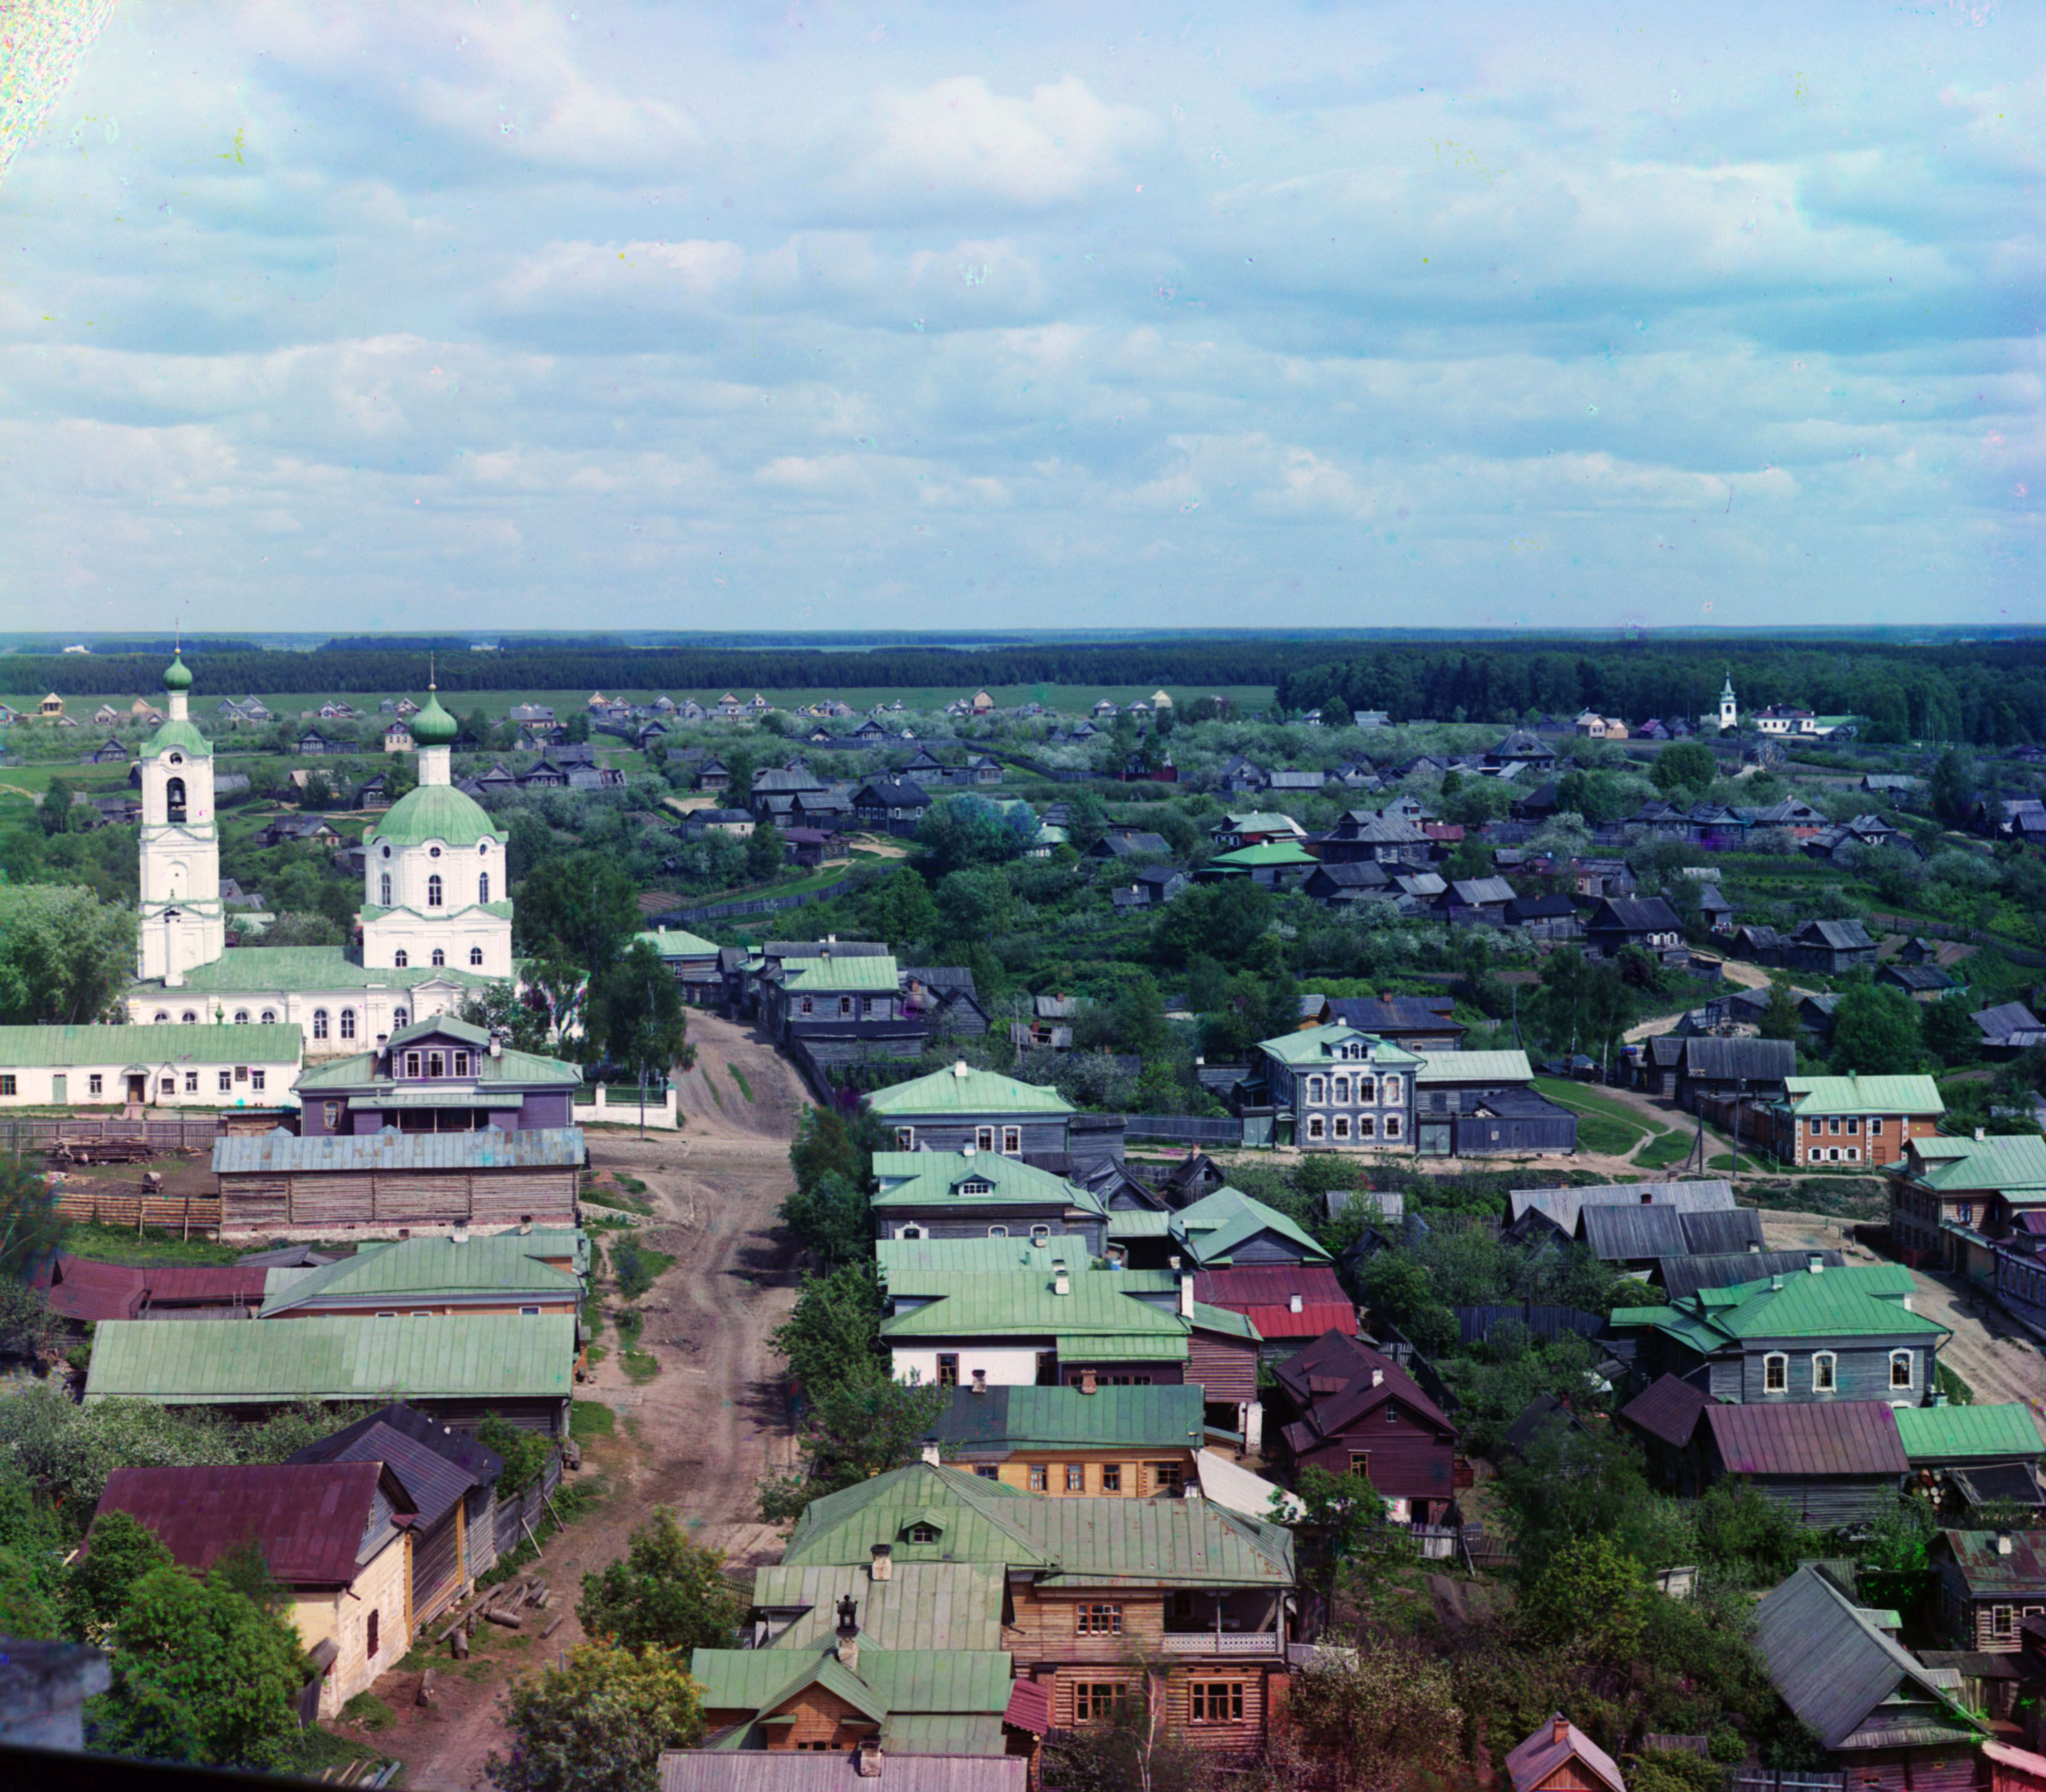 (1910) City of Rzhev with the Holy Protectoress Mother of God Church at the left.